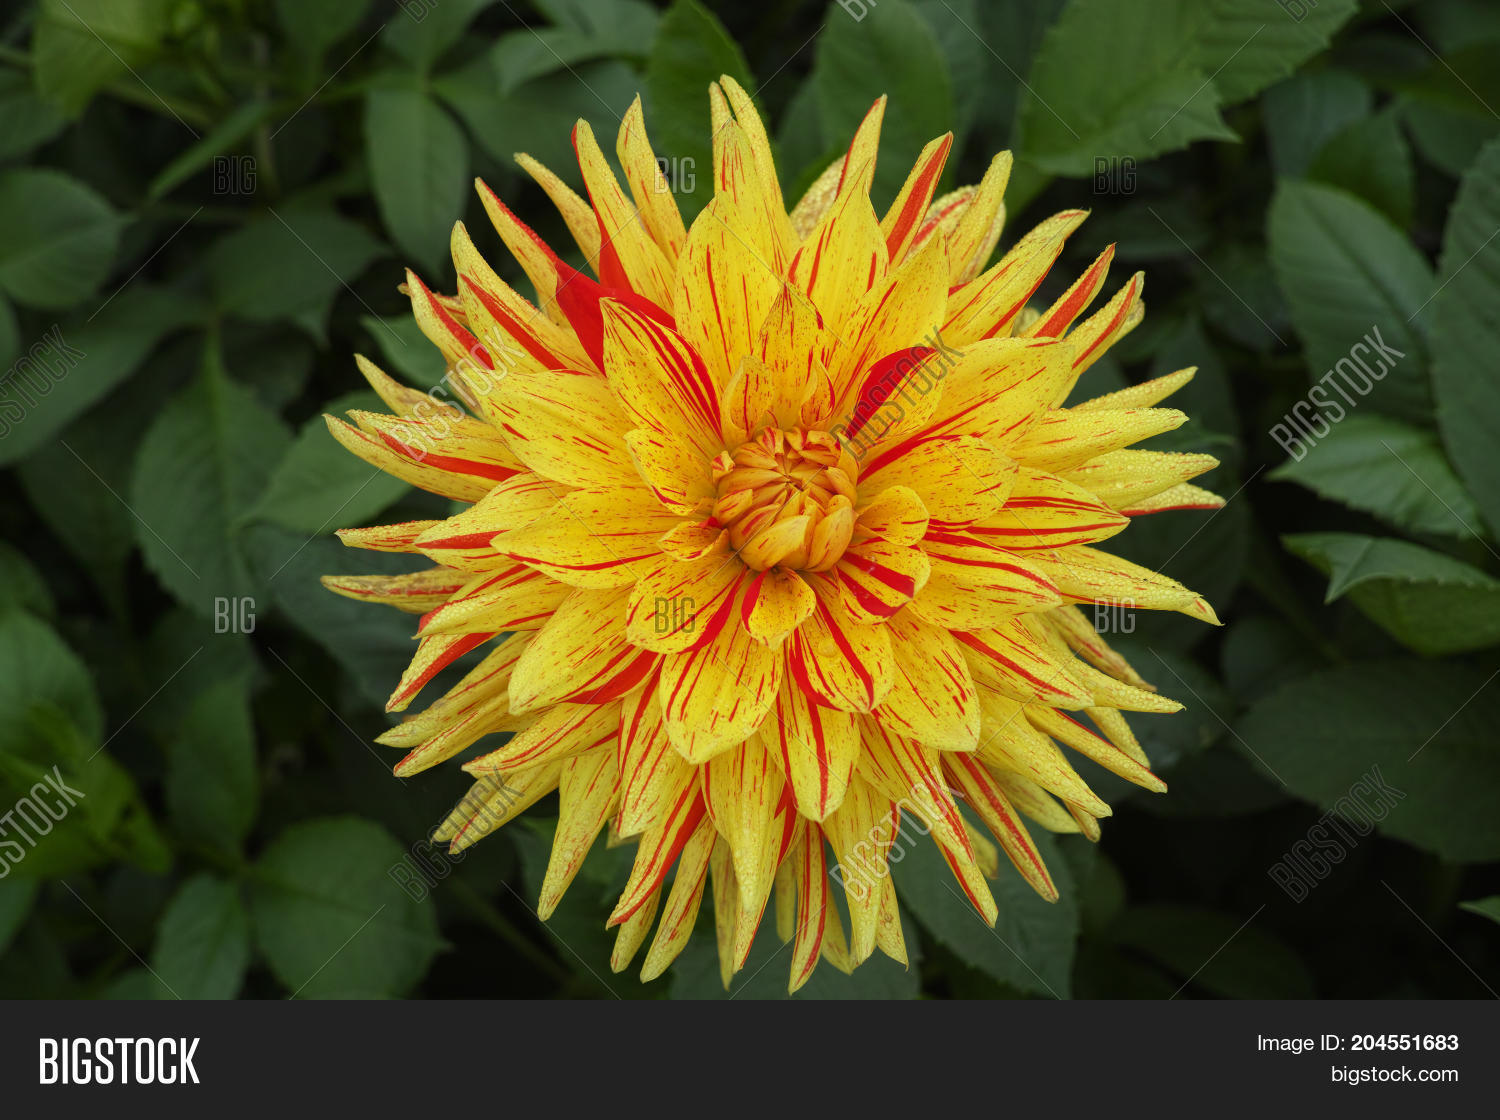 Yellow dahlia flowers image photo free trial bigstock yellow dahlia flowers beautiful bouquet or decoration from the garden izmirmasajfo